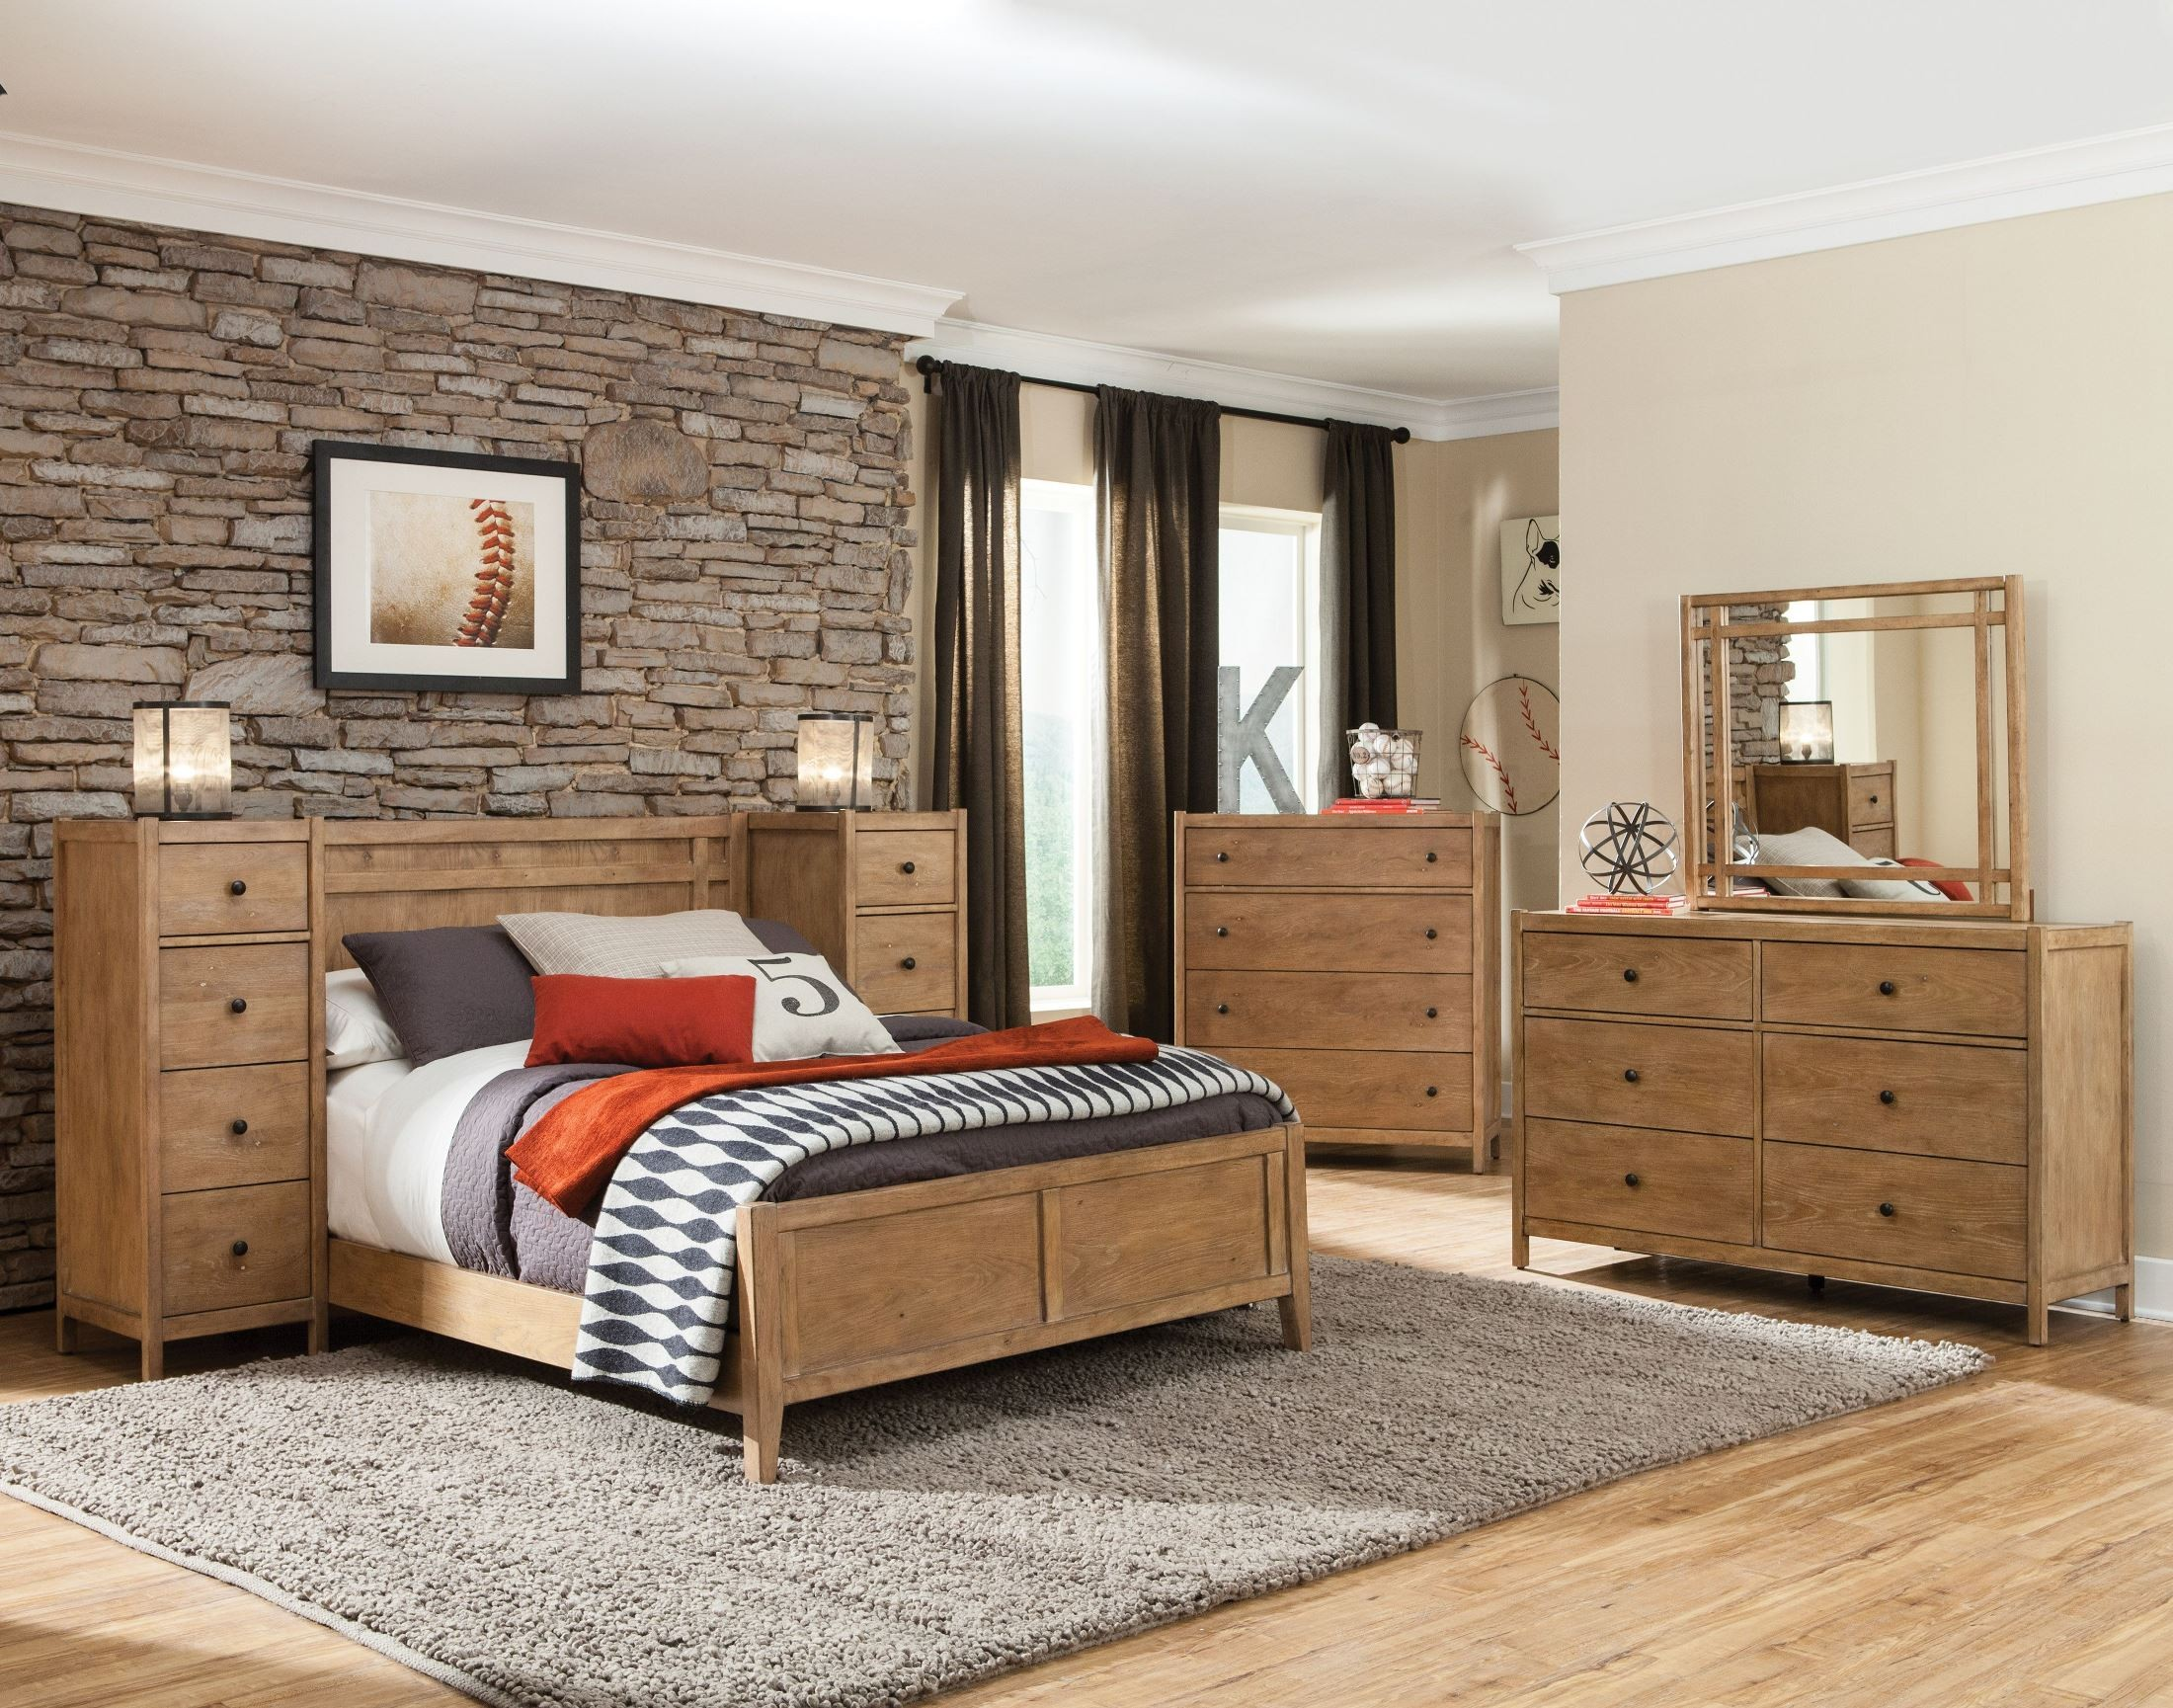 Essentials driftwood panel bedroom set 1000 33 pan for Bedroom furniture essentials